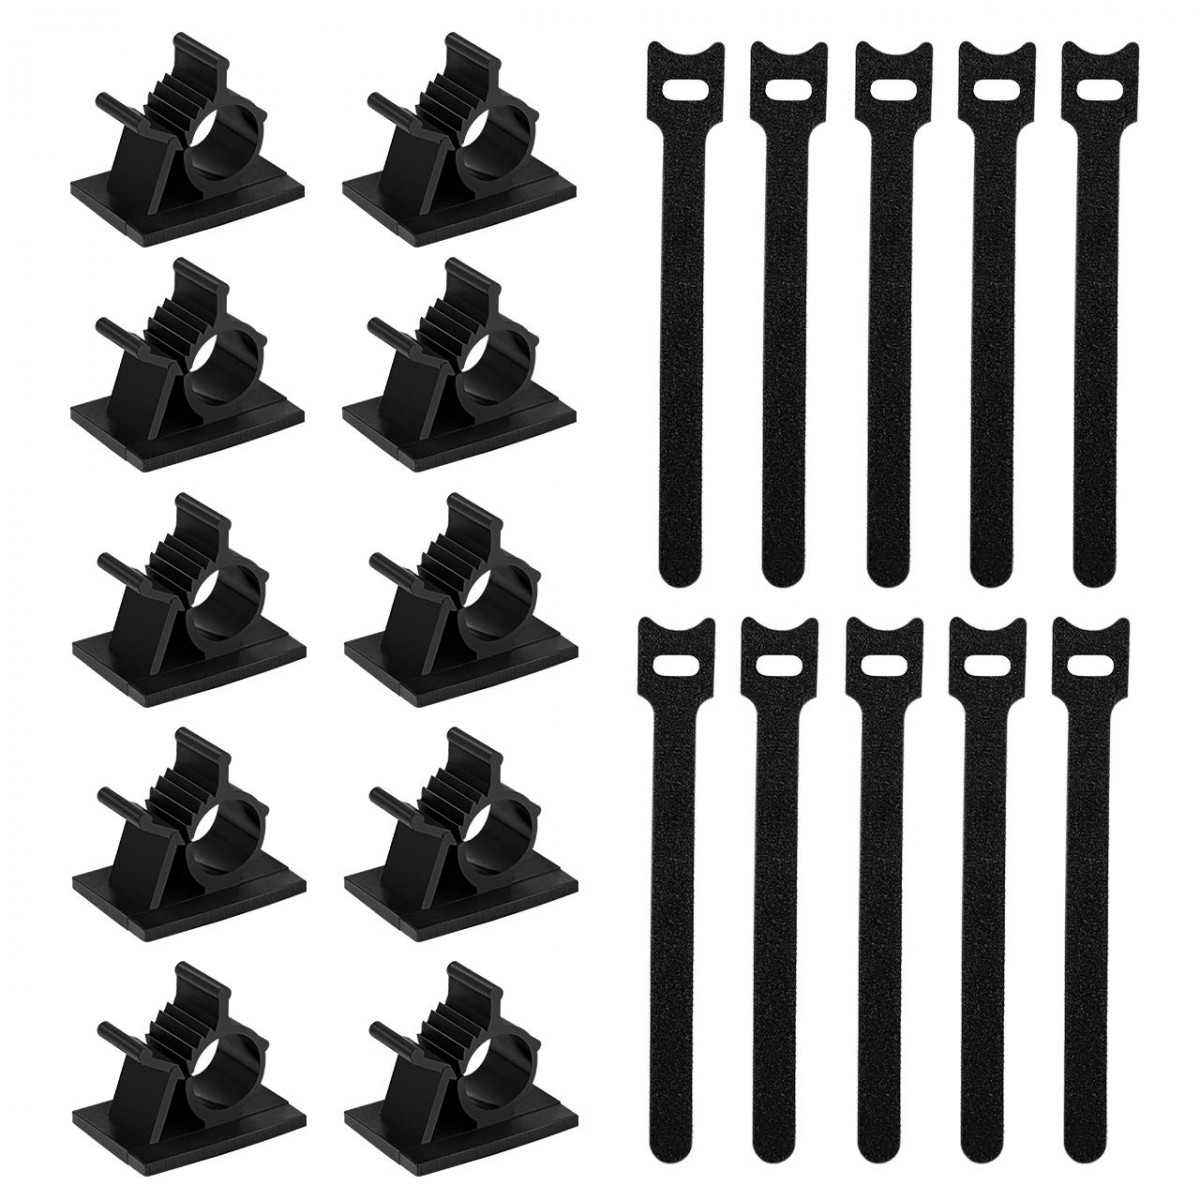 172867f7f2ed Kootek 60+30 Pcs Cable Management Kits, 60 Pcs Reusable Fastening Cable Ties,  30 Pcs Adhesive Cable Clips, Flexible Wire Organizer Cord Holder Wrap  Straps ...